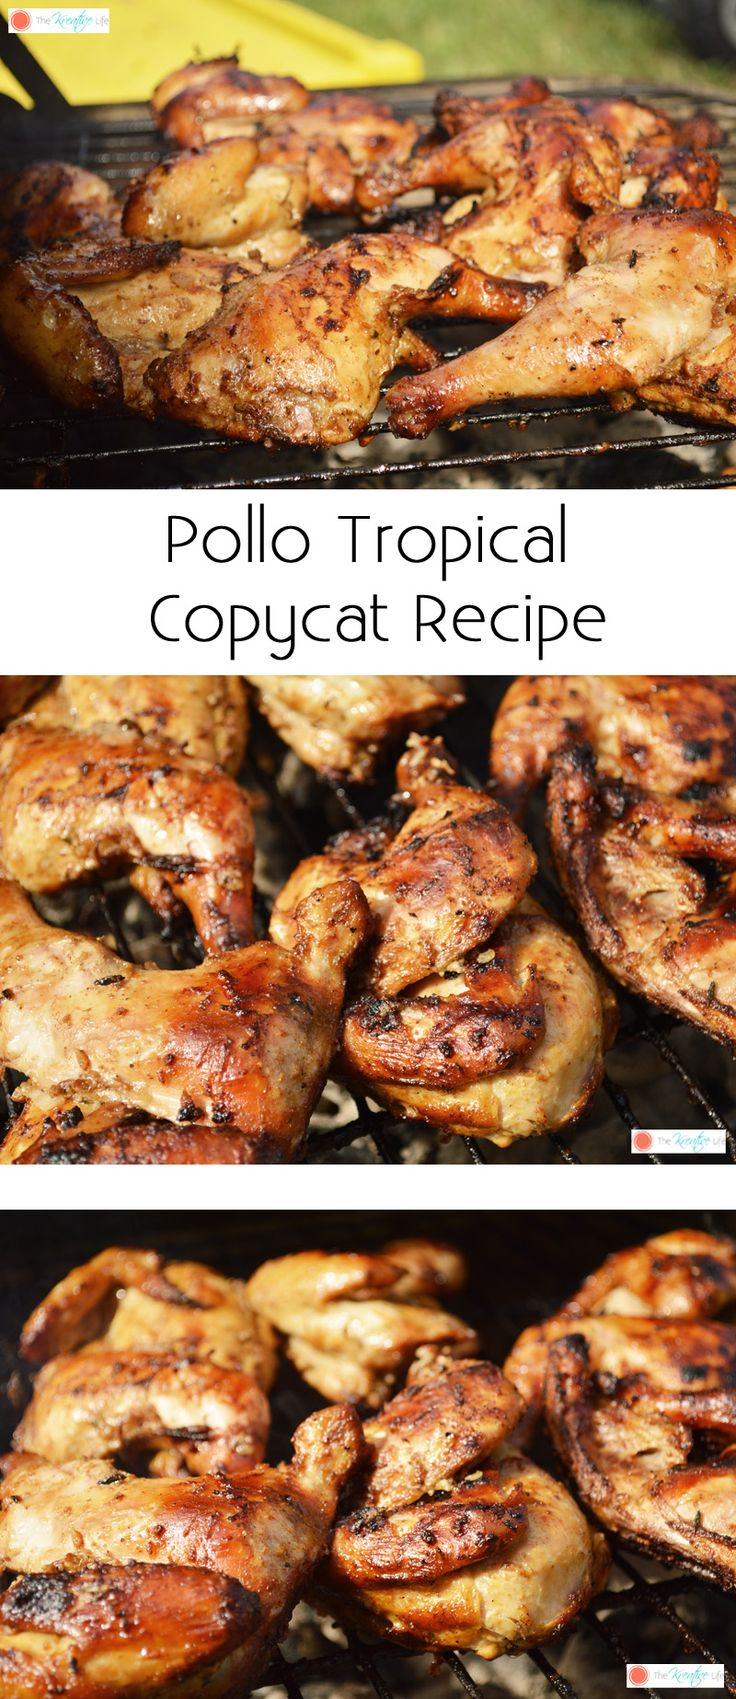 Pollo Tropical Copycat Recipe- The Kreative Life